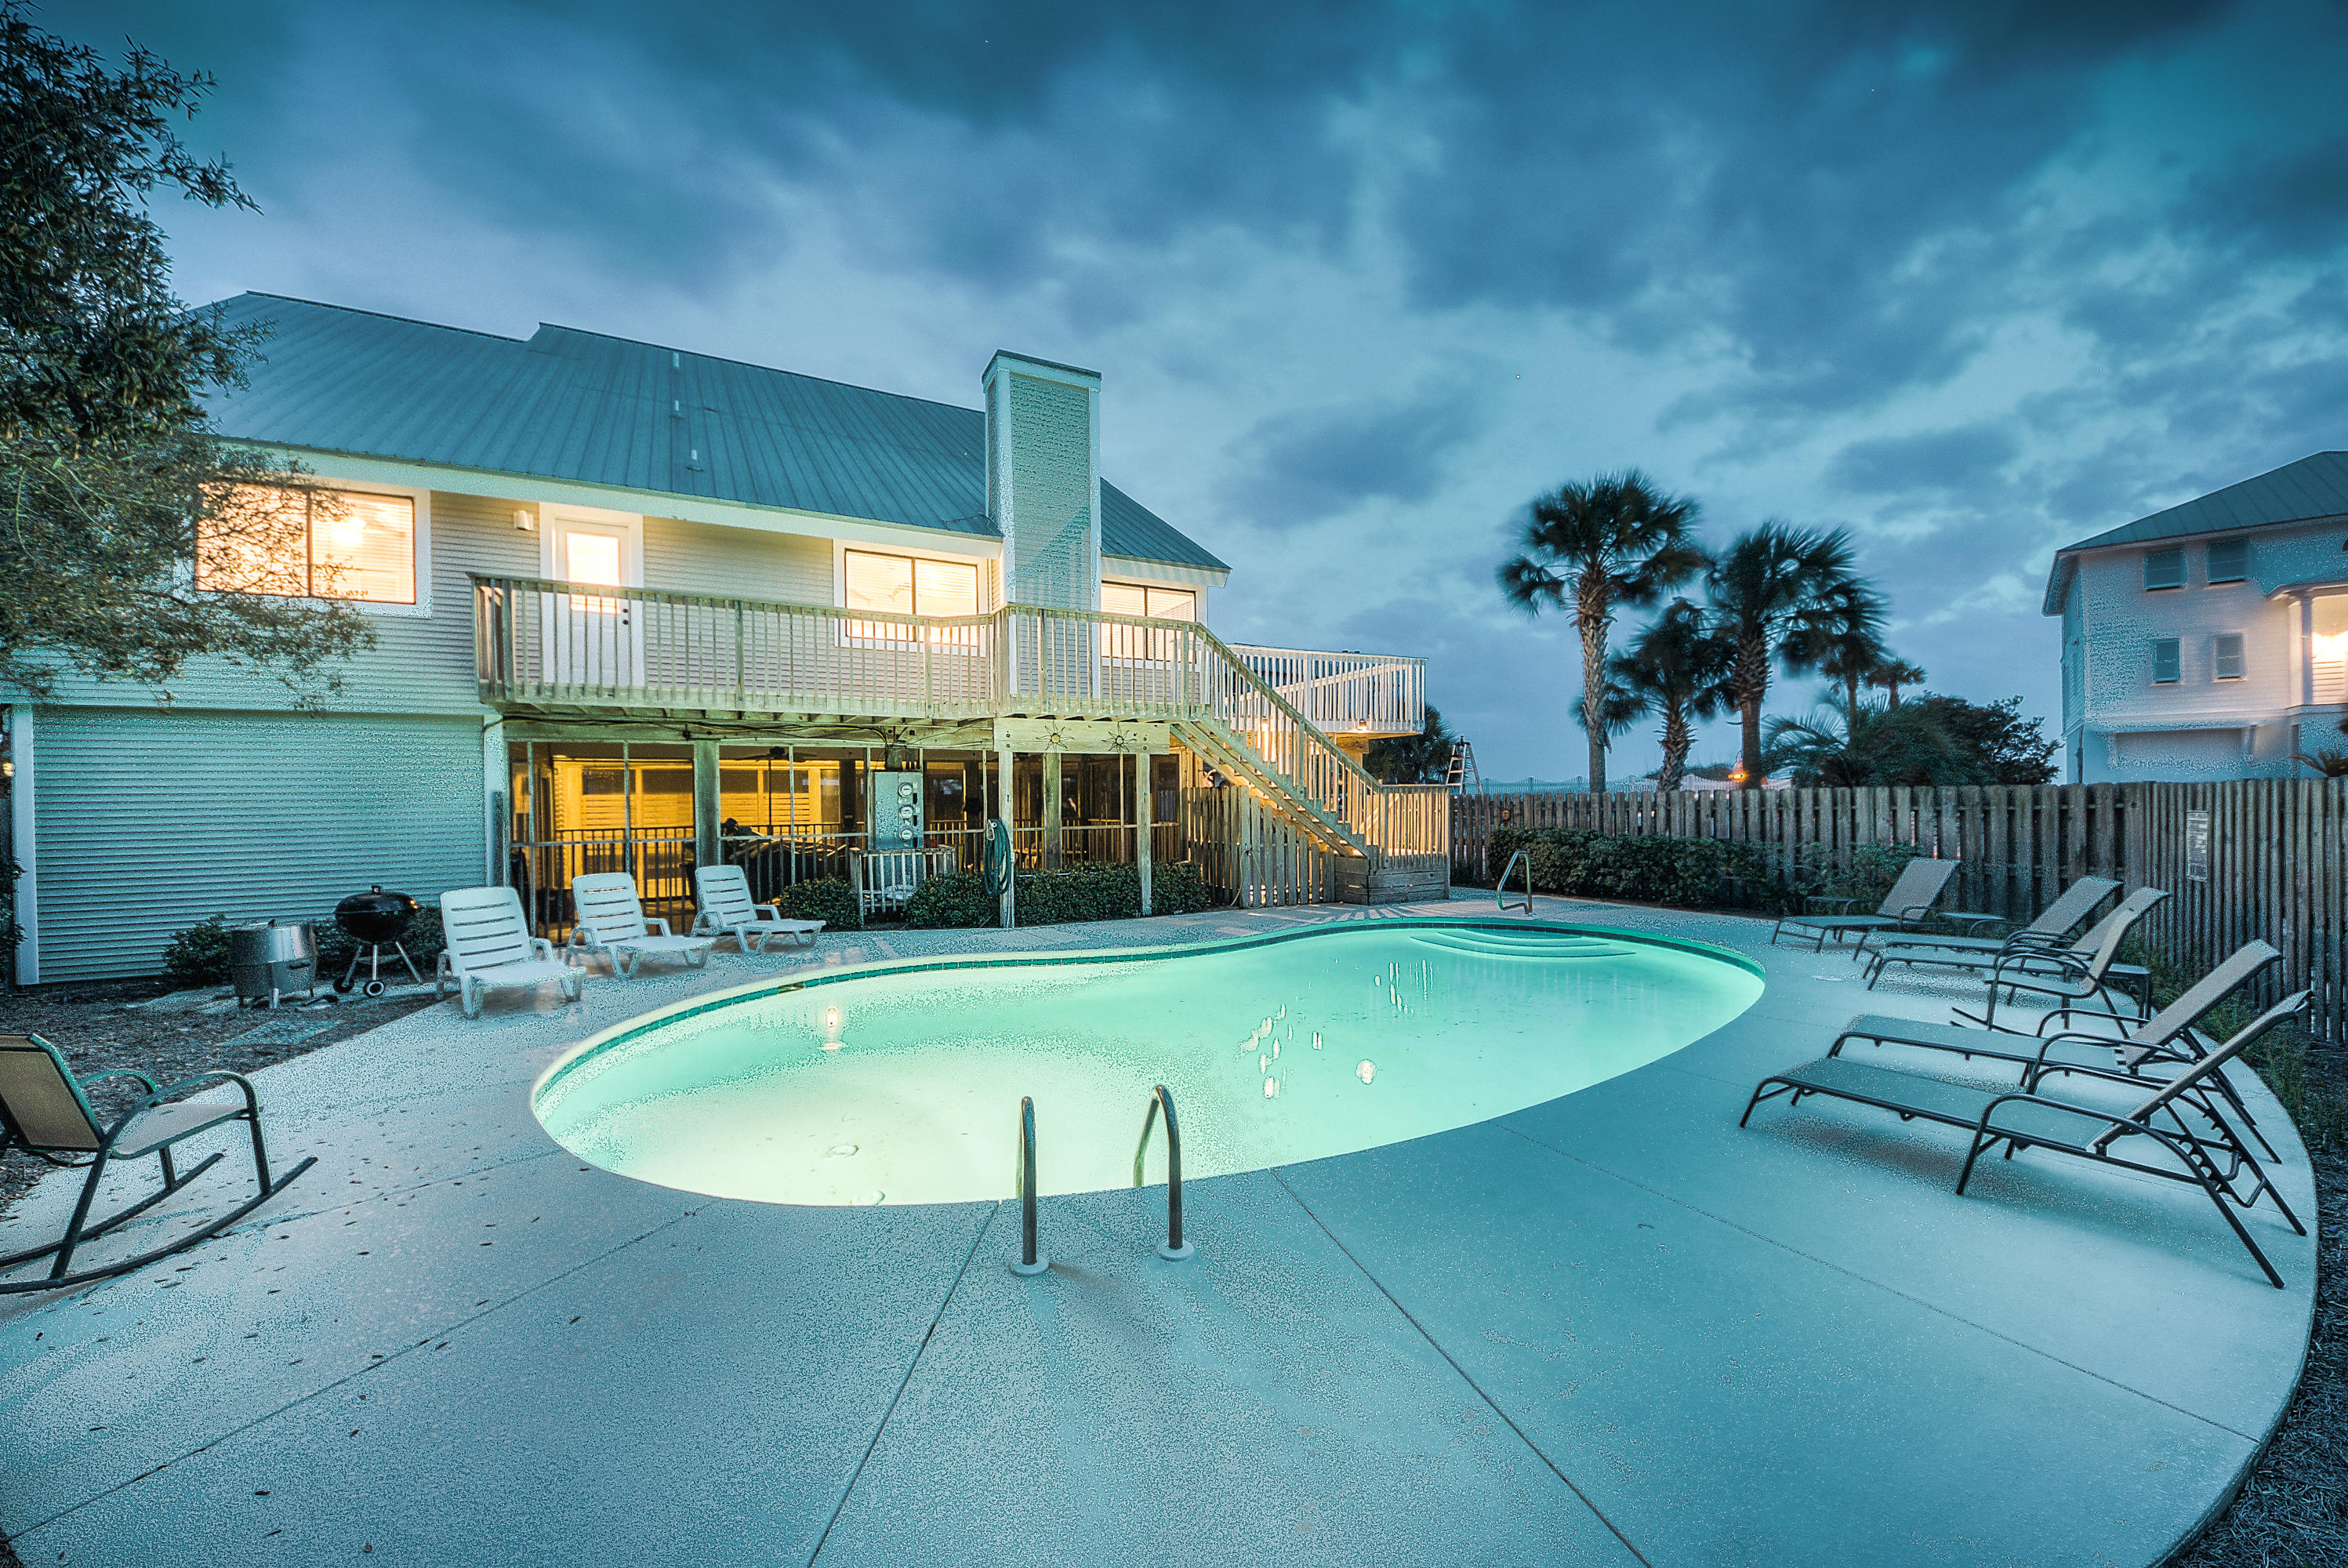 A 5 Bedroom 4 Bedroom Gulf Trace Townhome